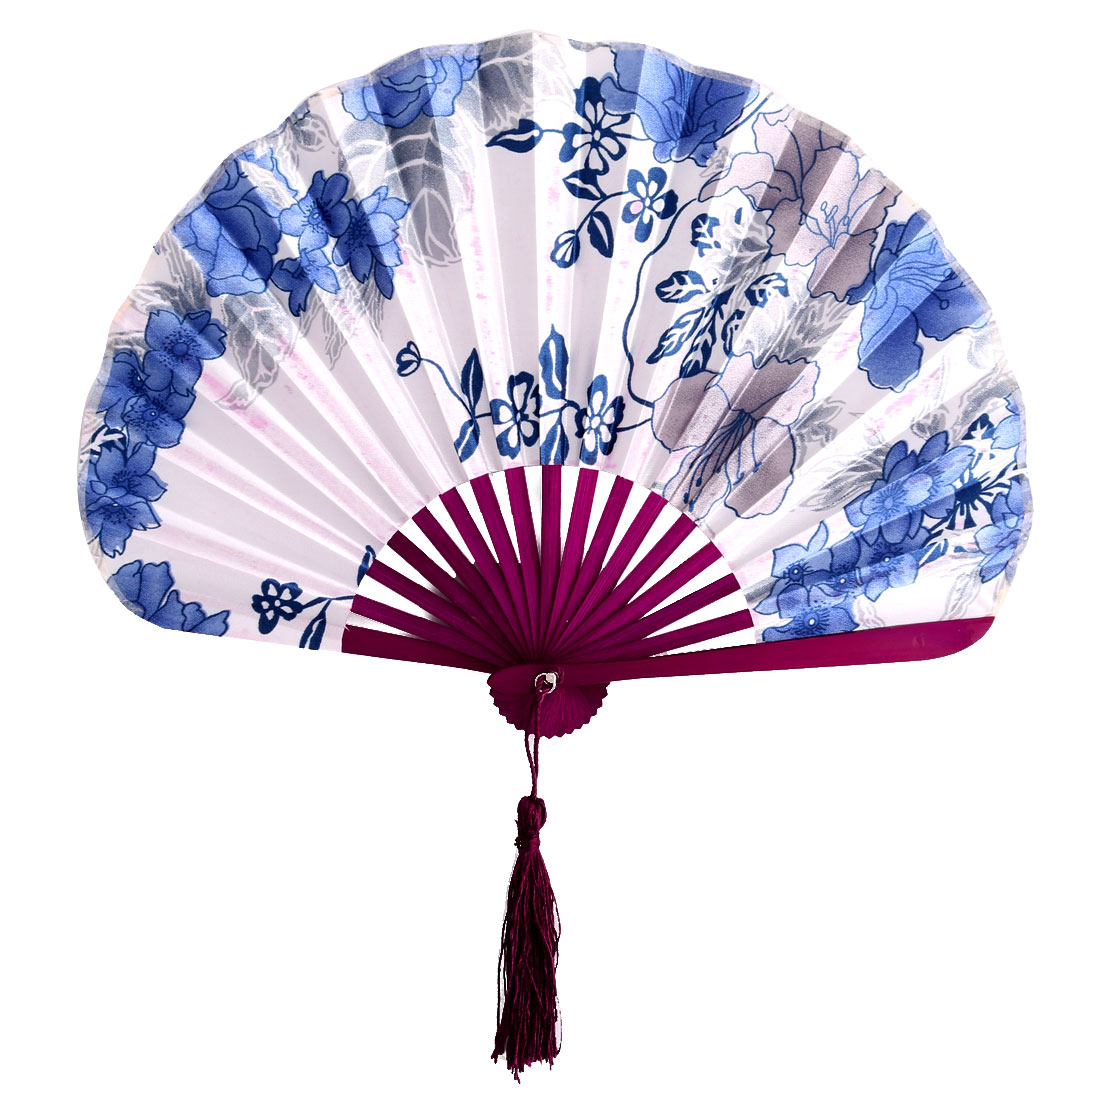 Wedding Household Bamboo Handle Floral Pattern Tassel Pendant Decoration Gift Hand Fan Blue